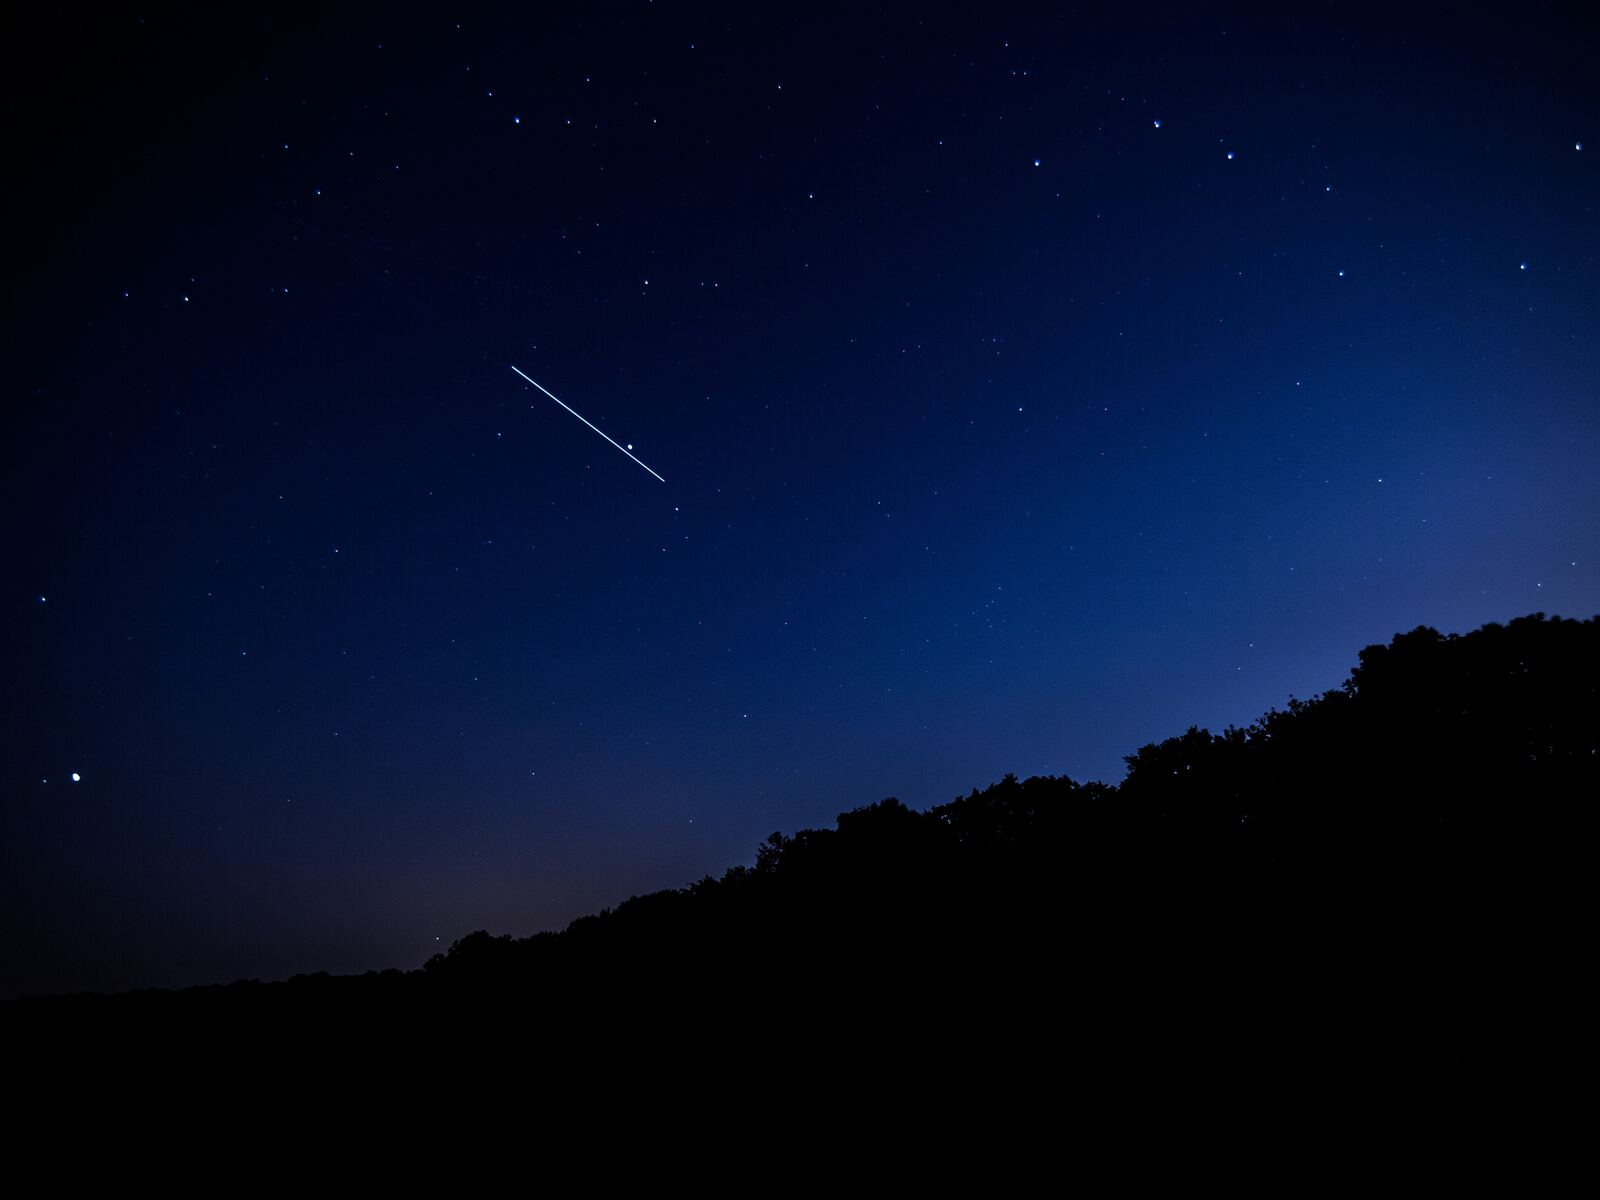 1600x1200 Shooting Stars 5k 1600x1200 Resolution Hd 4k Wallpapers Images Backgrounds Photos And Pictures